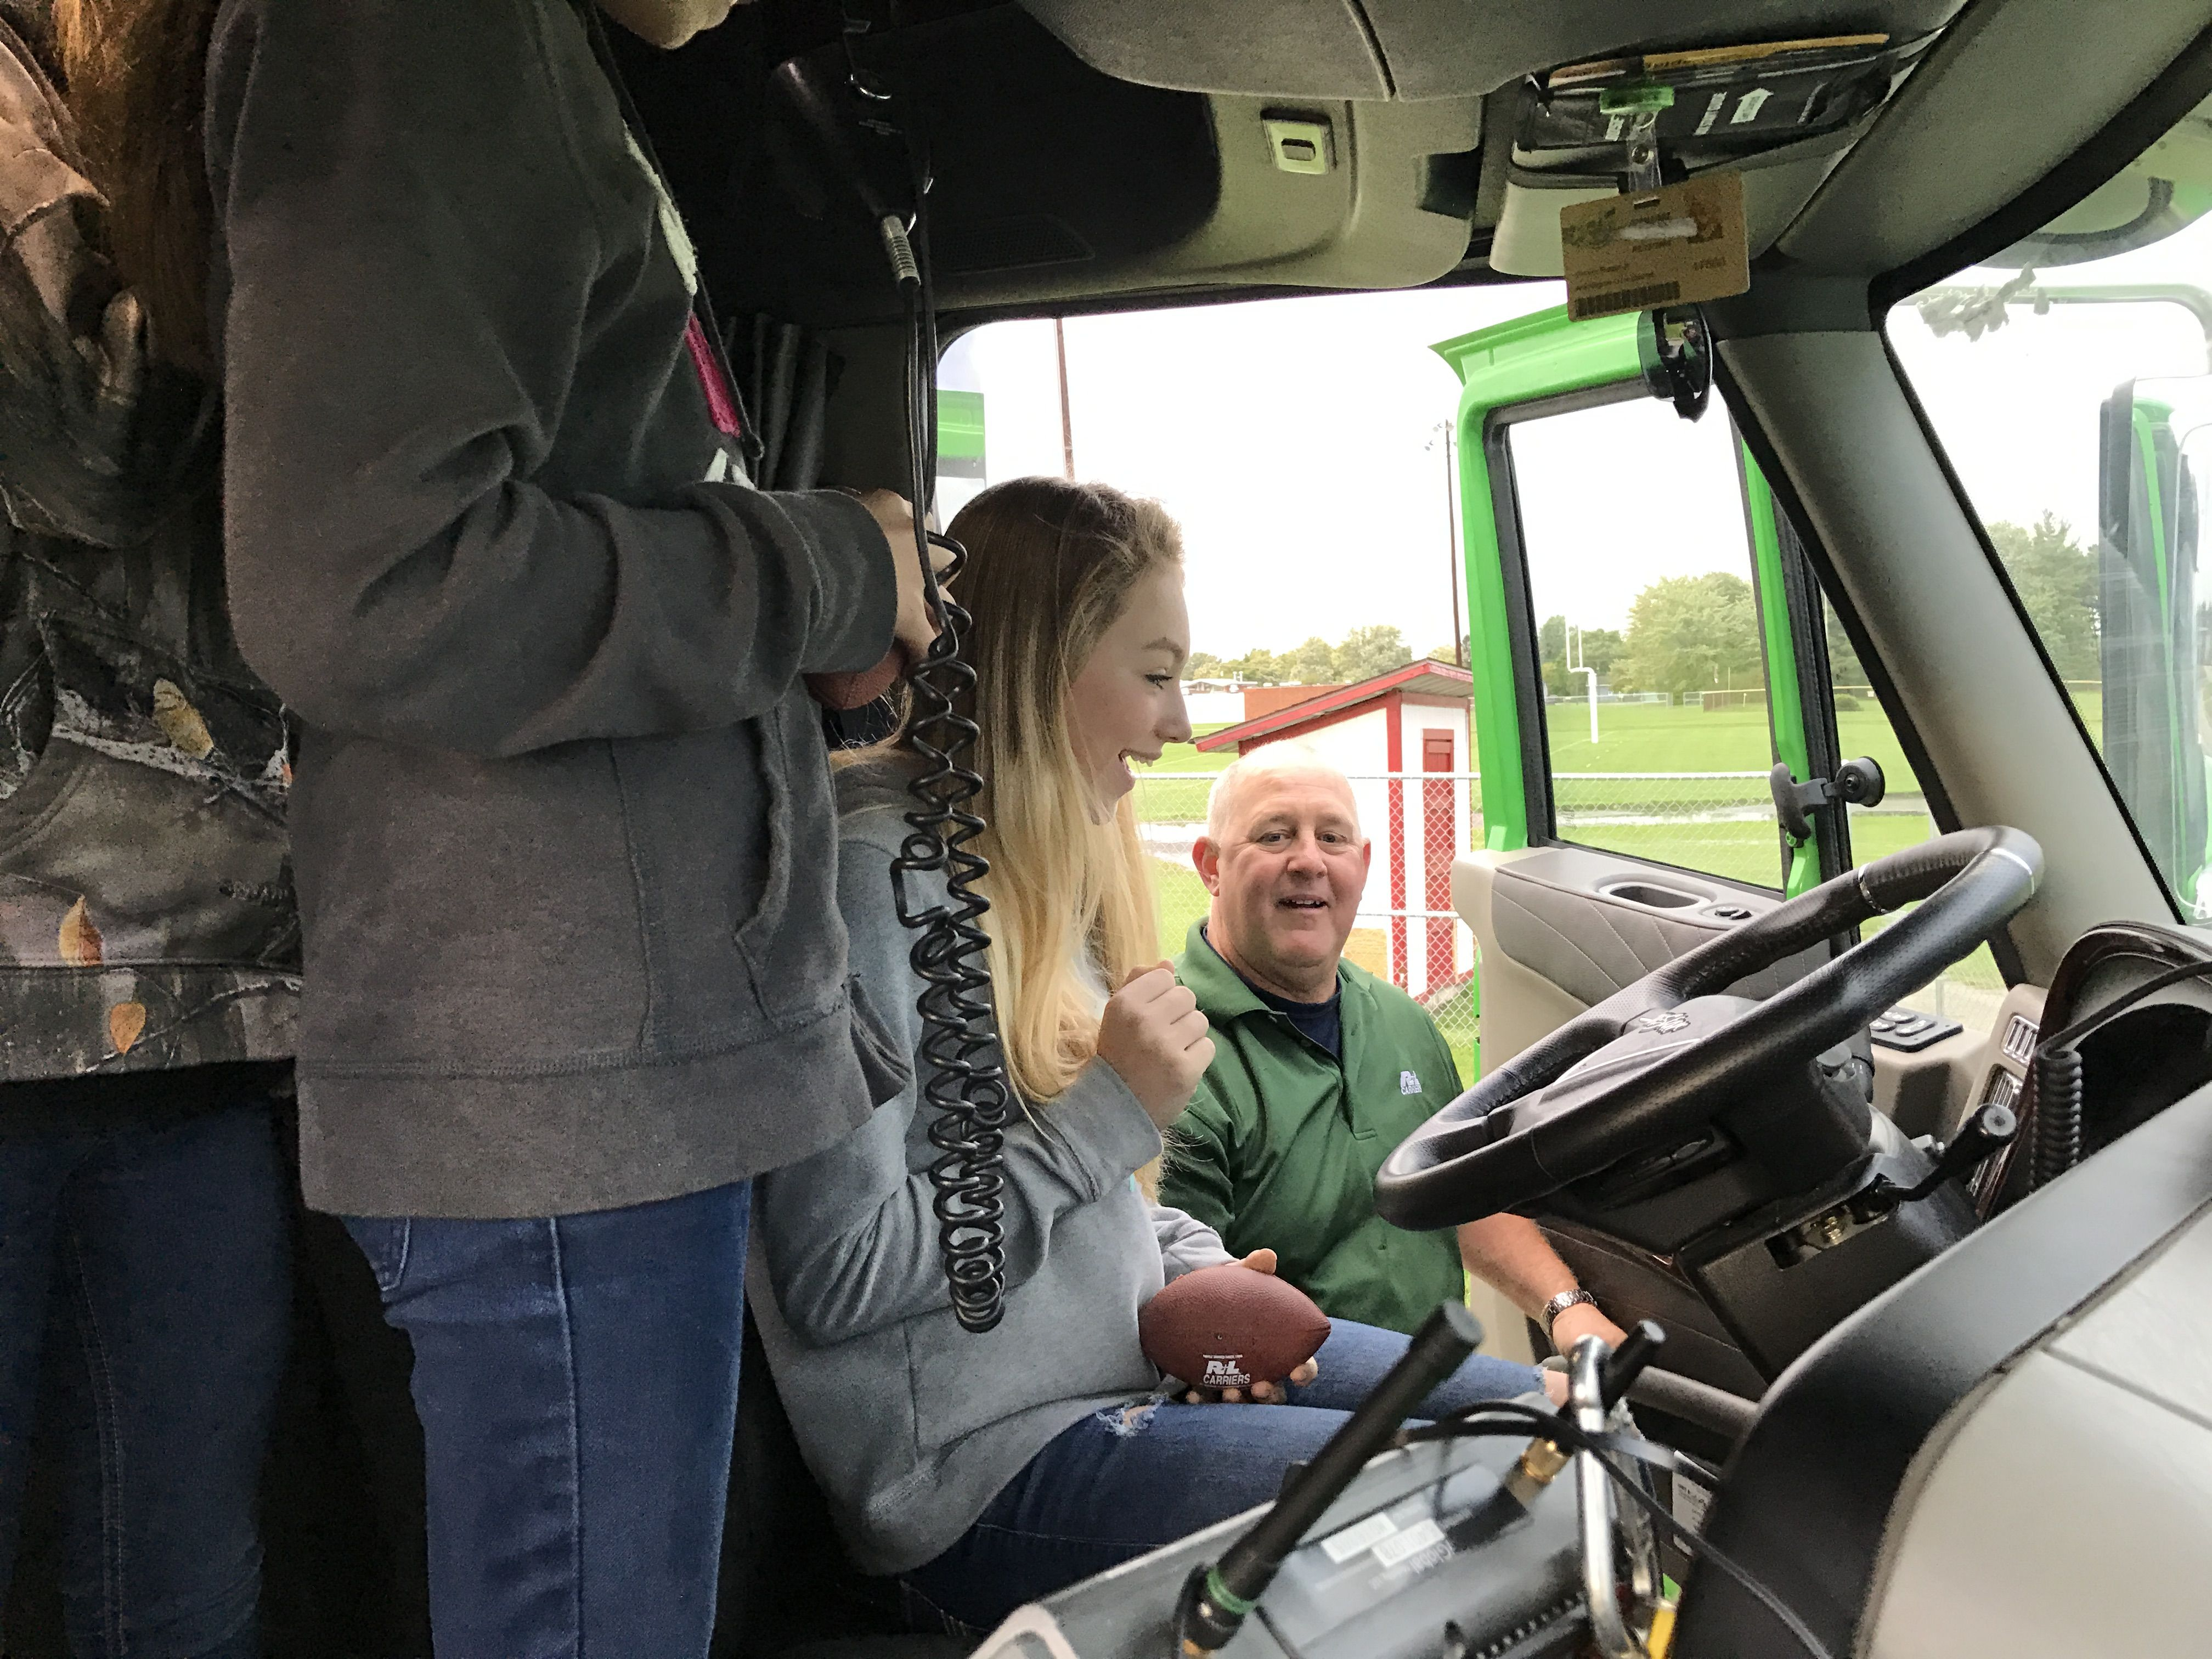 Cardinal High School student takes the wheel of the hauler.